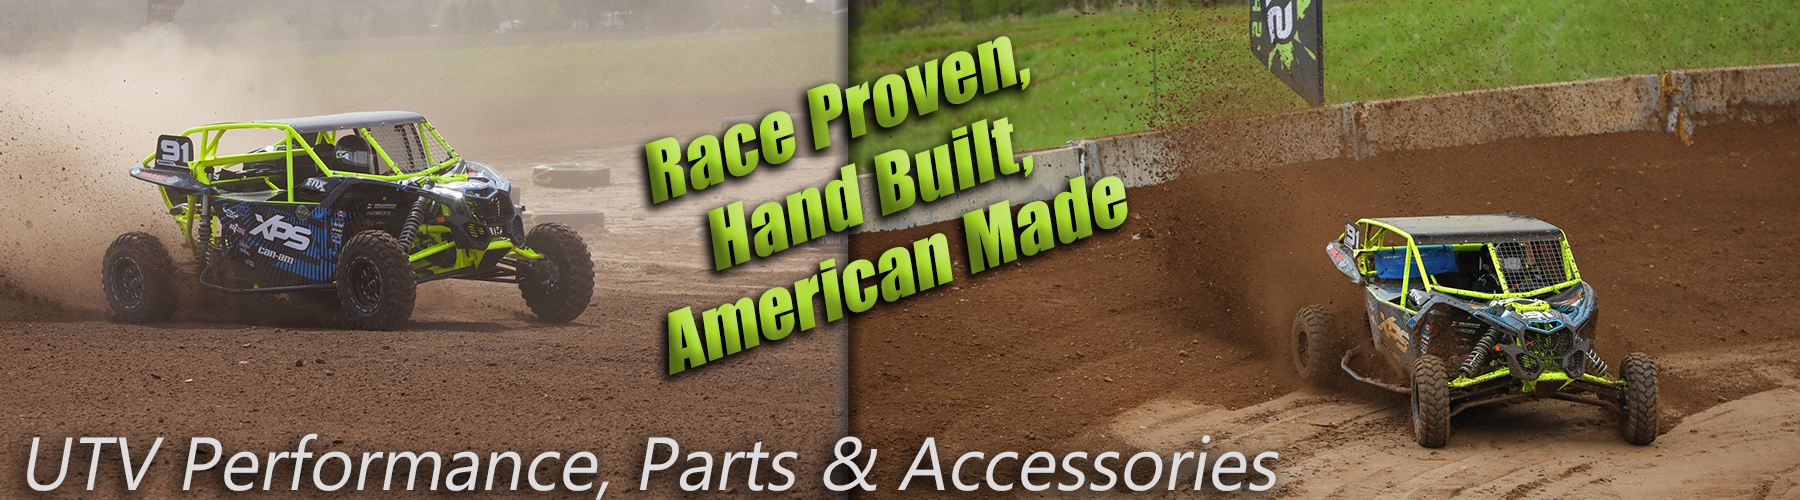 Side by Side UTV Performance Parts & Accessories | CT Race Worx